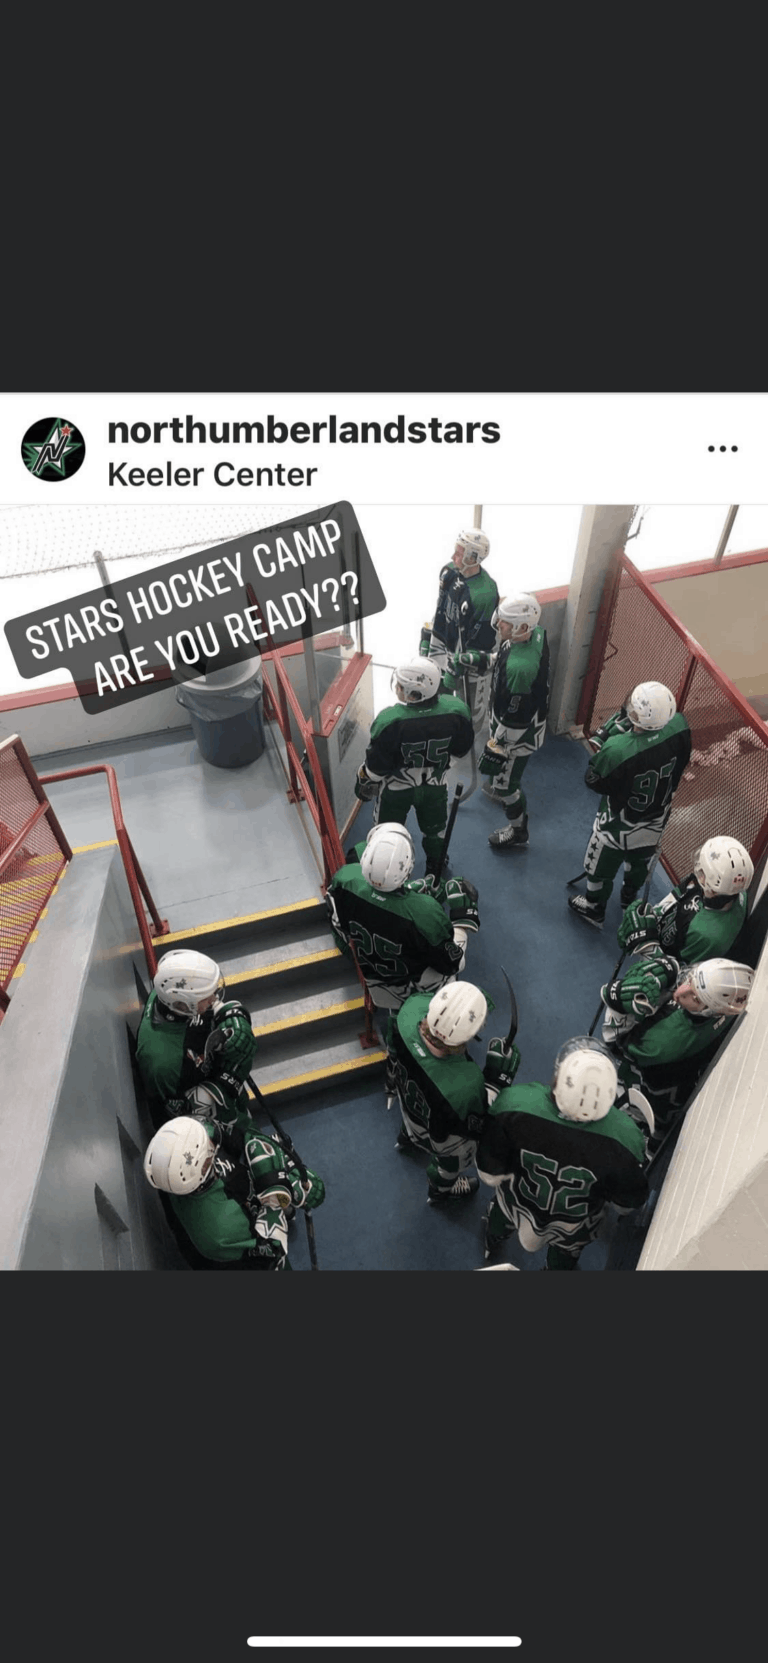 Lace up your Skates…..Stars Camp starts: September 29 – October 3rd